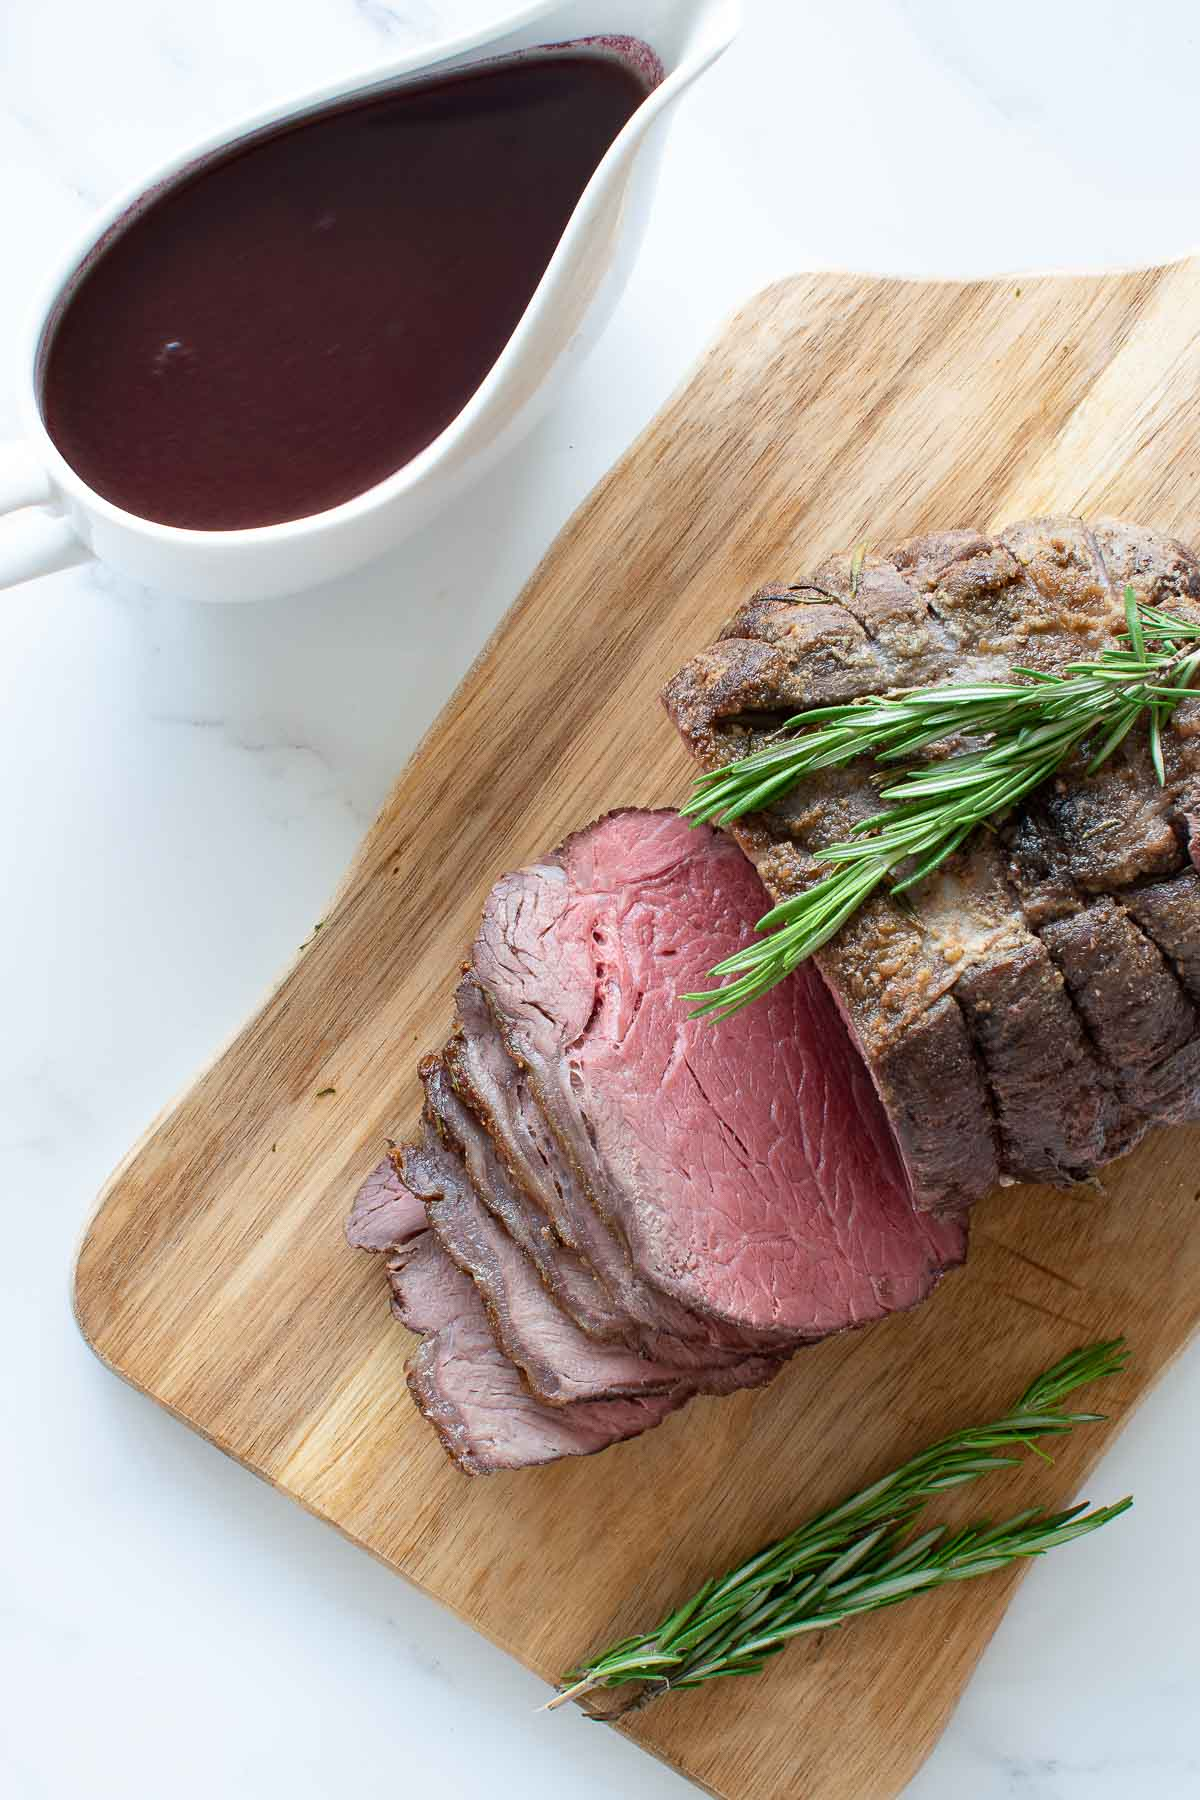 Sliced roast beef with gravy on the side.